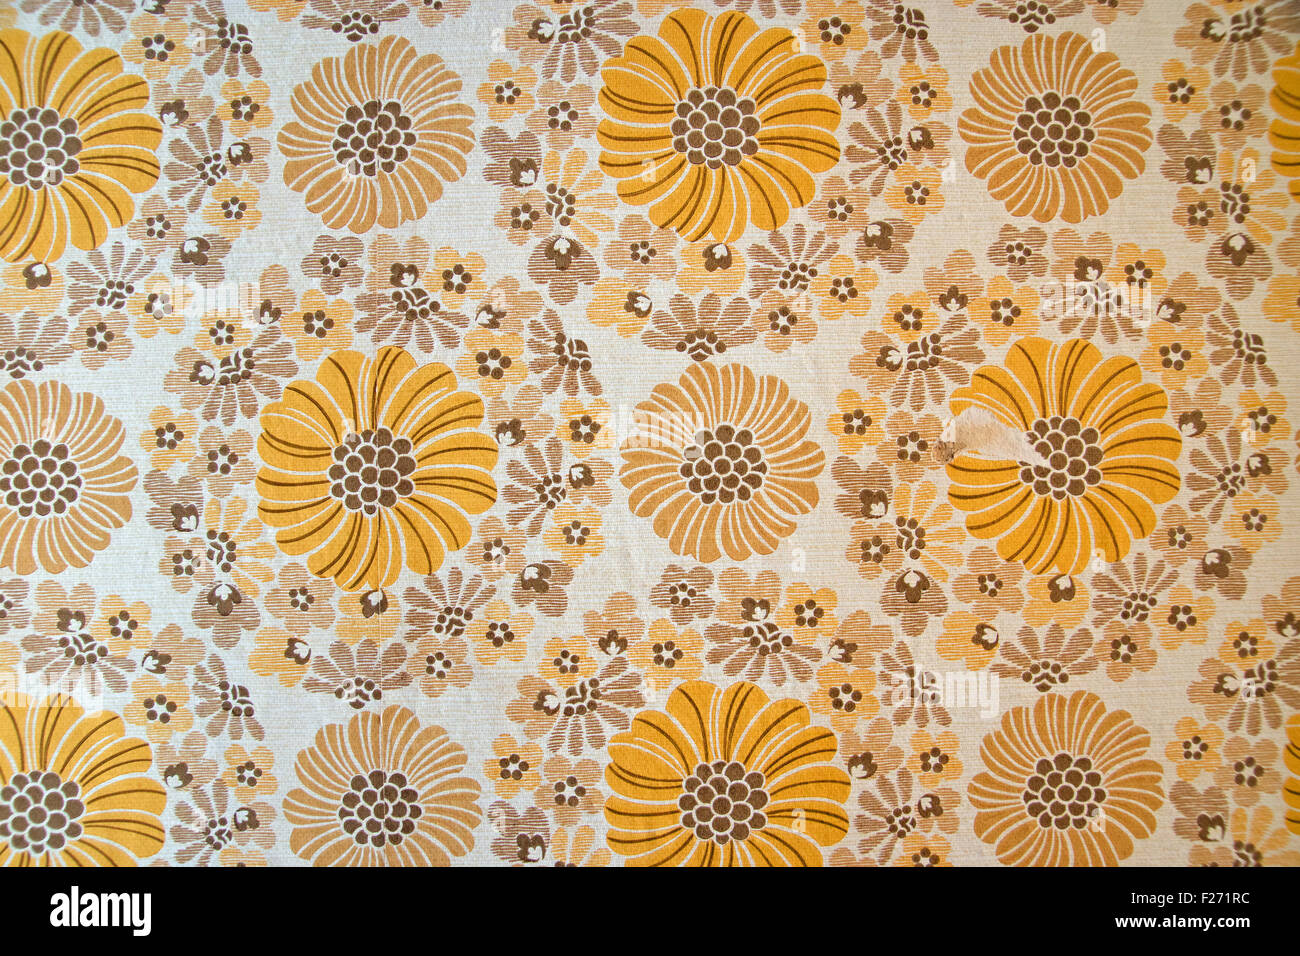 A typical wallpaper from the seventies - Stock Image